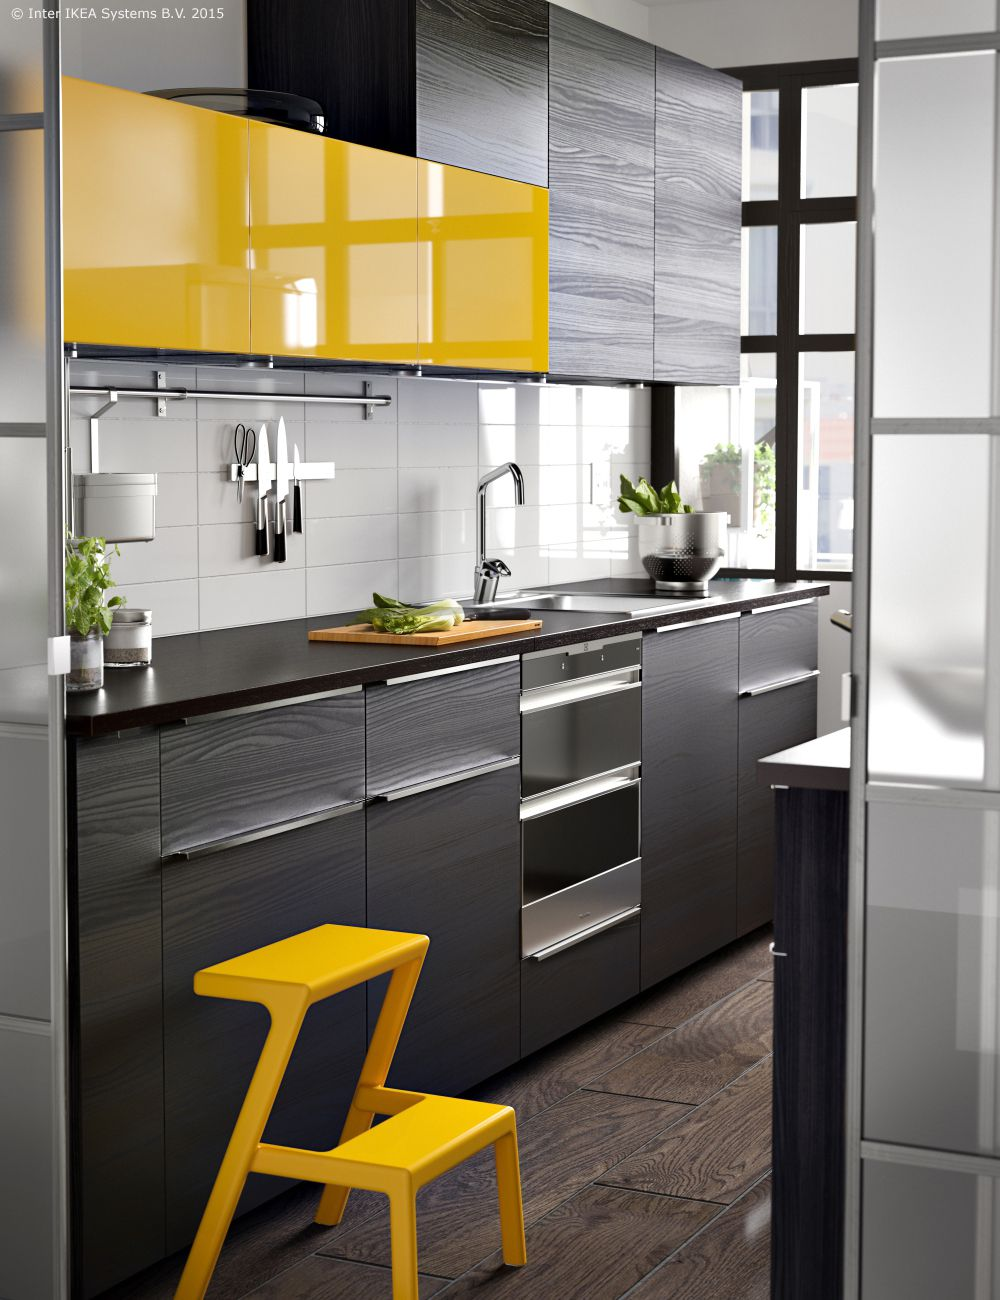 39 Best Ideas Desain & Decor Yellow Kitchen Accessories  Yellow Inspiration Interior Design Kitchen Ideas Design Inspiration